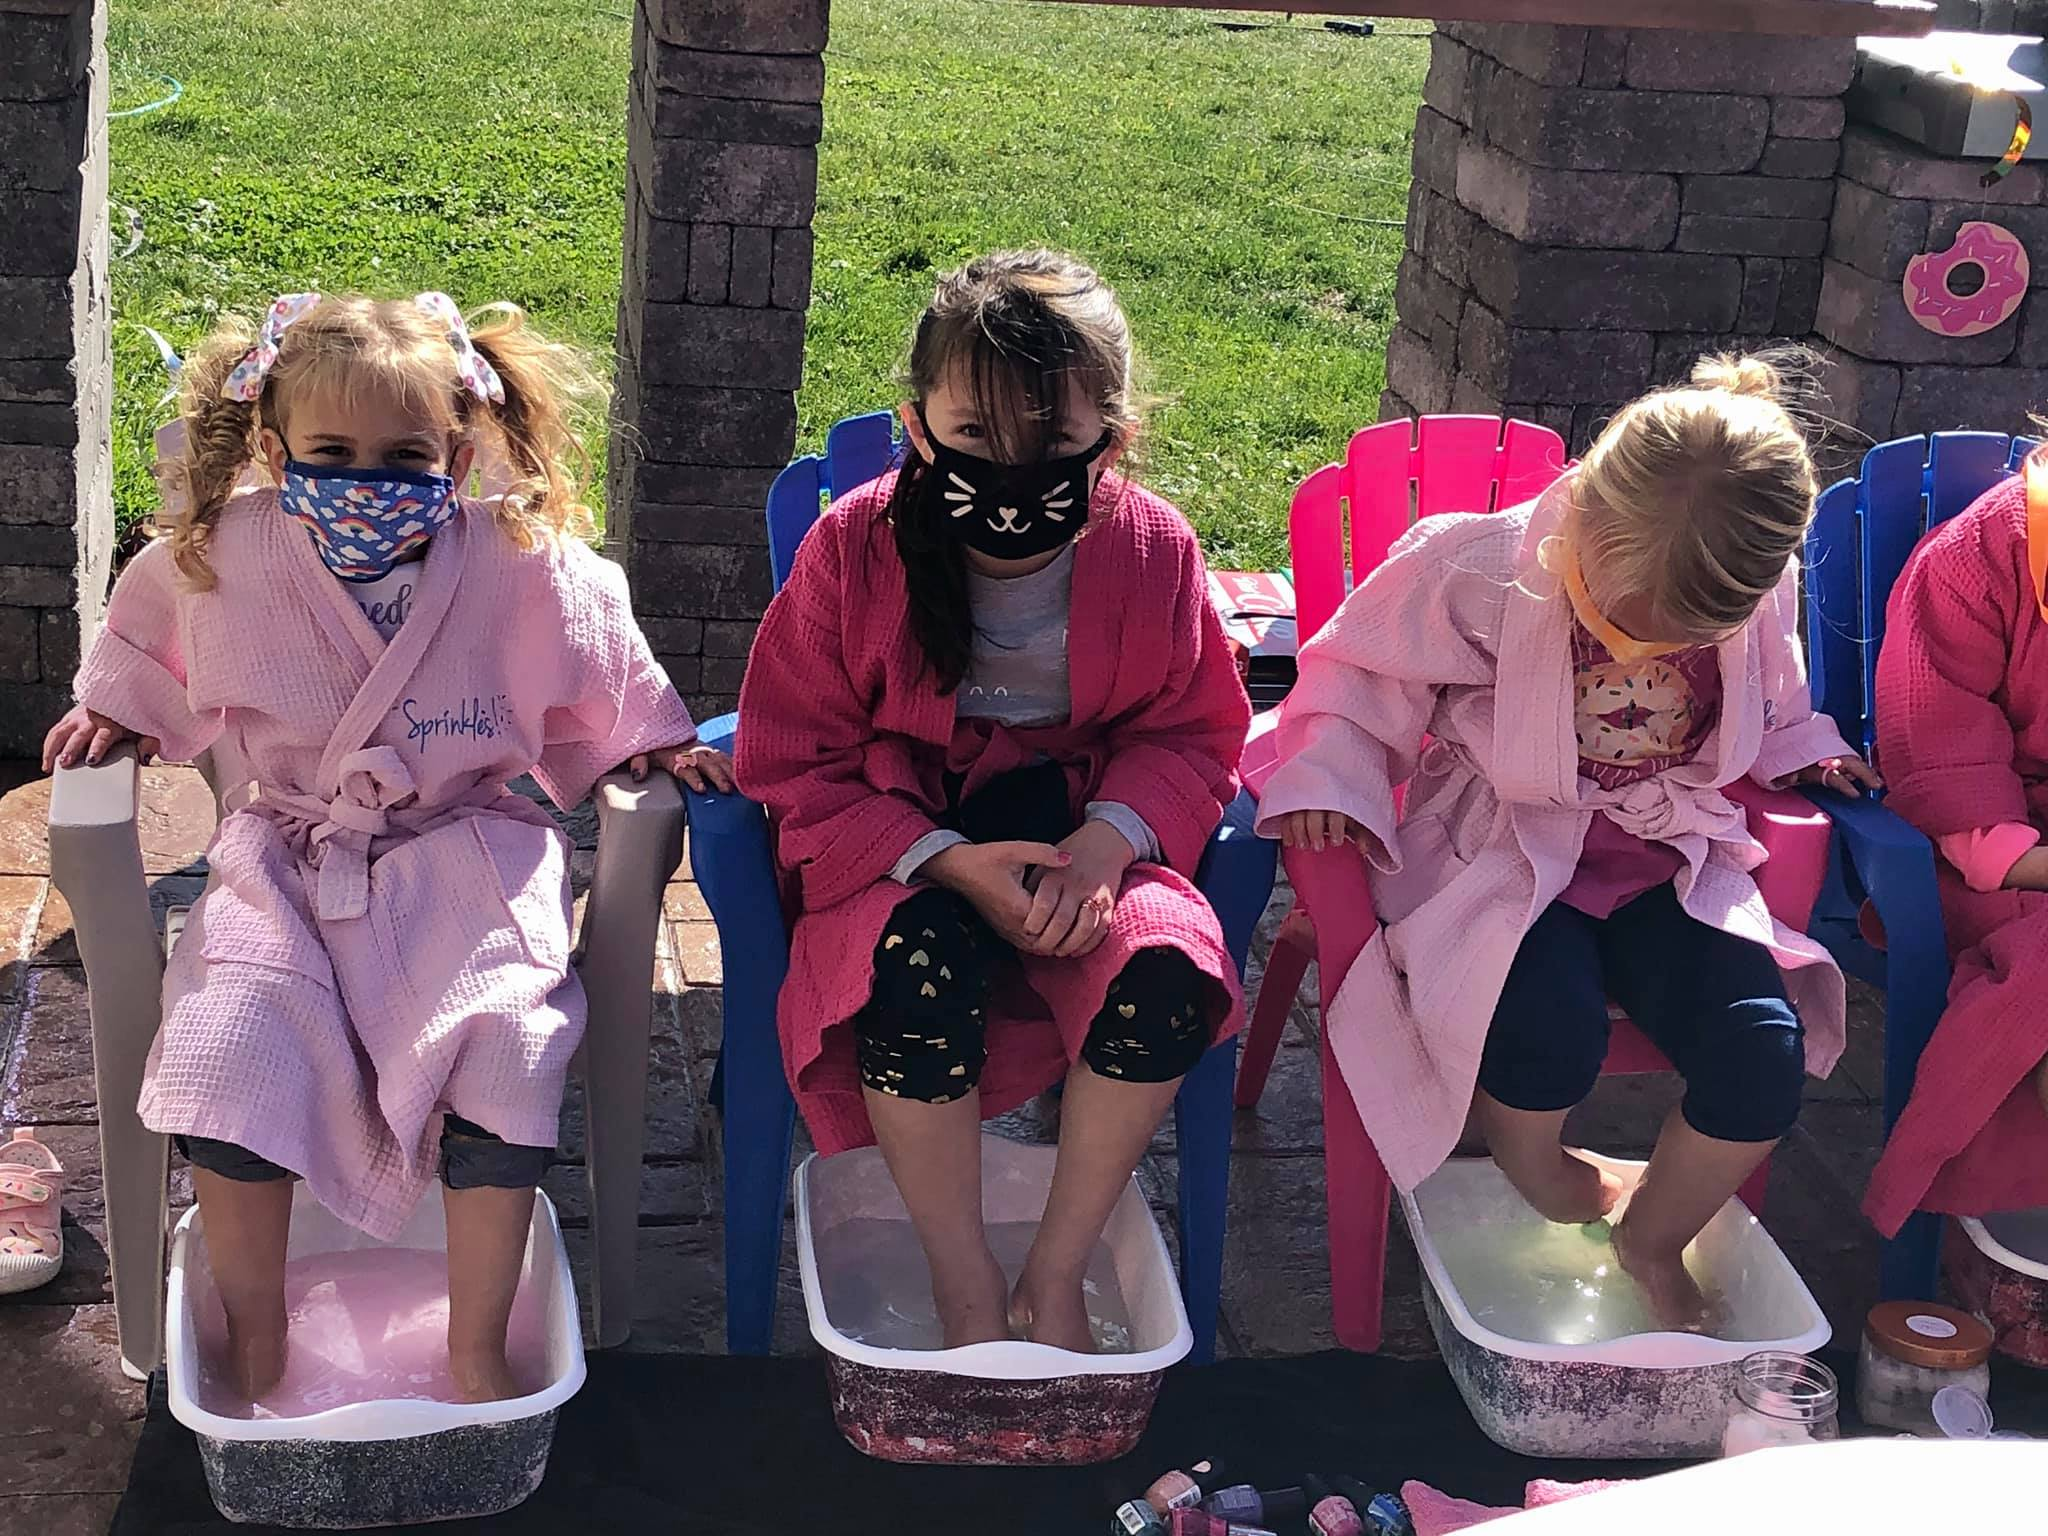 Mobile Spa Party with Sprinkles Kids